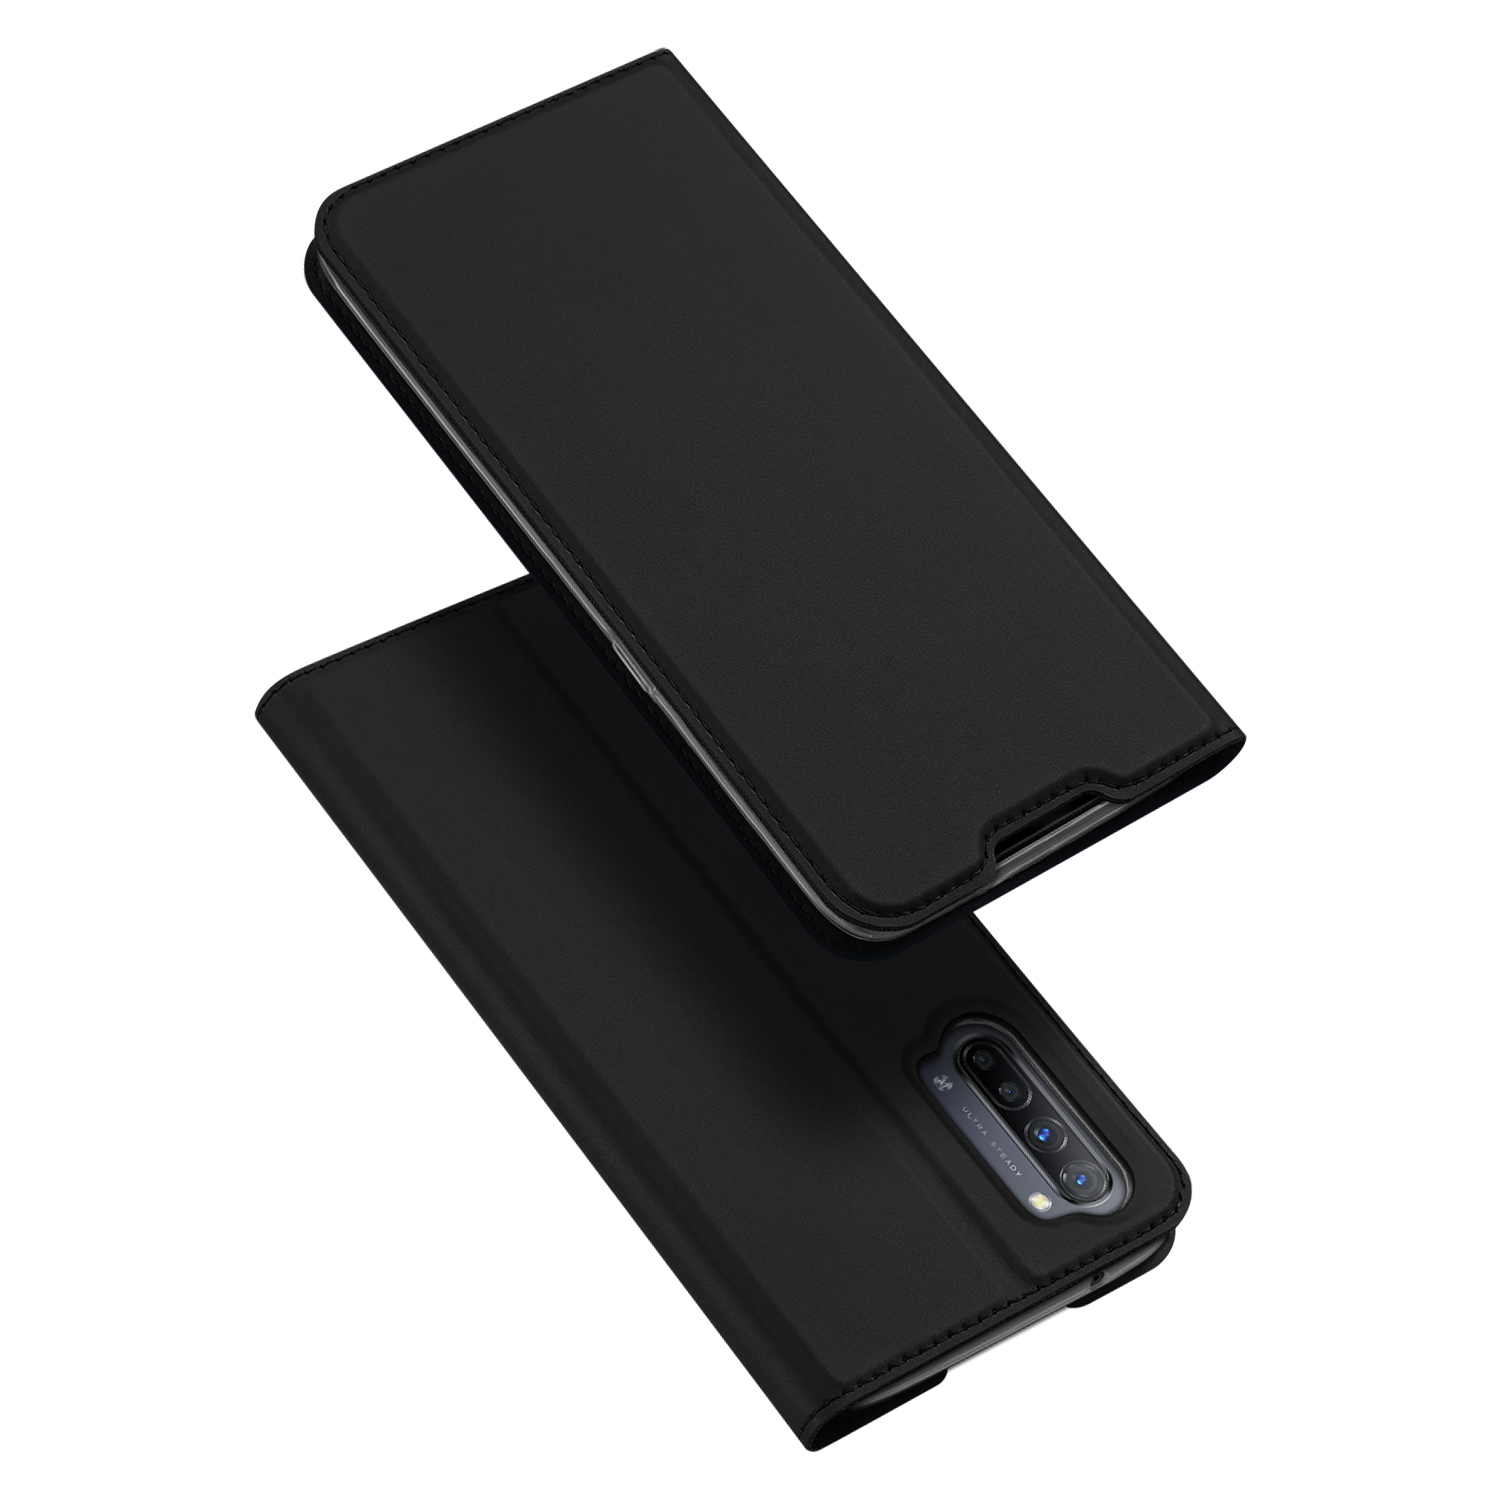 For OPPO Reno 3/3 Pro/ 3 pro 4G Case Magnetic Closure Card Slots Cellphone Cover Screen Protector Stand Available Leather Shell black